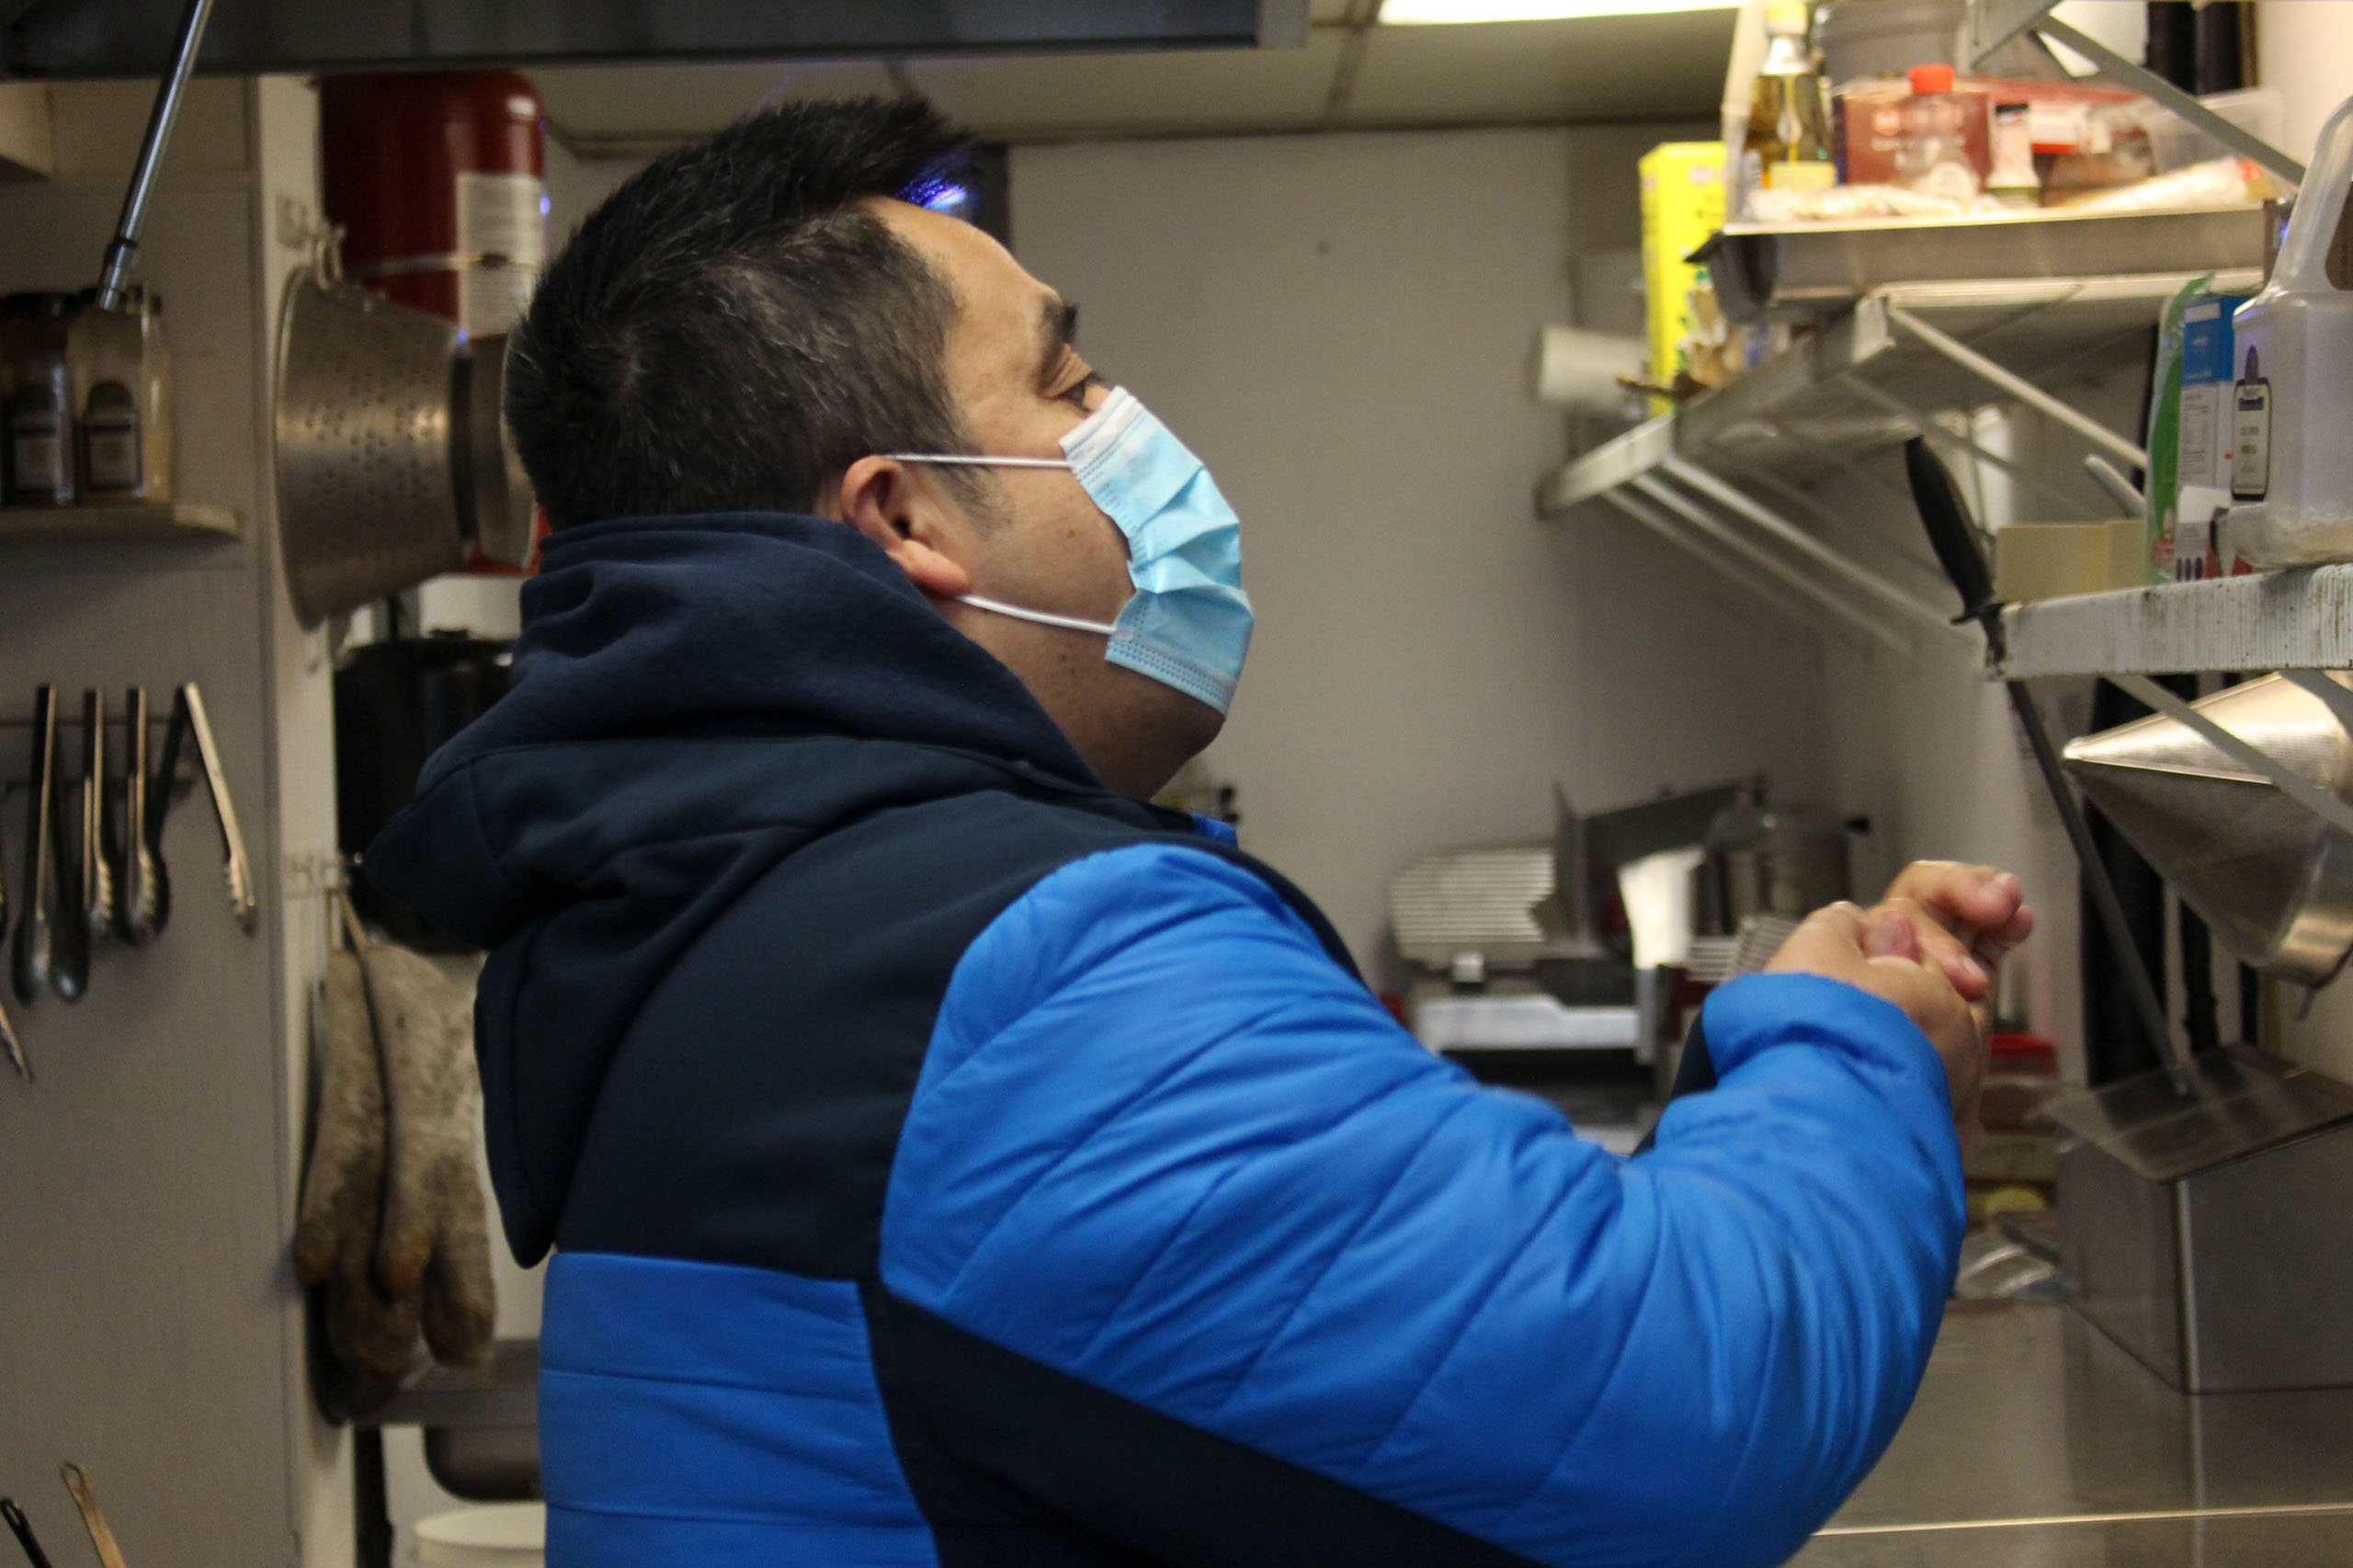 Francisco Melgar applies hand sanitizer before putting on gloves in the kitchen of Bottlescrew Bill's before starting his cleaning duties in Calgary on April. 15, 2021. Melgar was laid off officially from the Sheraton Eau Claire, the place he worked for for 15 years, back in October of 2020, after being on a leave as a result of the COVID-19 pandemic. He was the assistant to the power engineer. (Photo by Alejandro Melgar/SAIT)